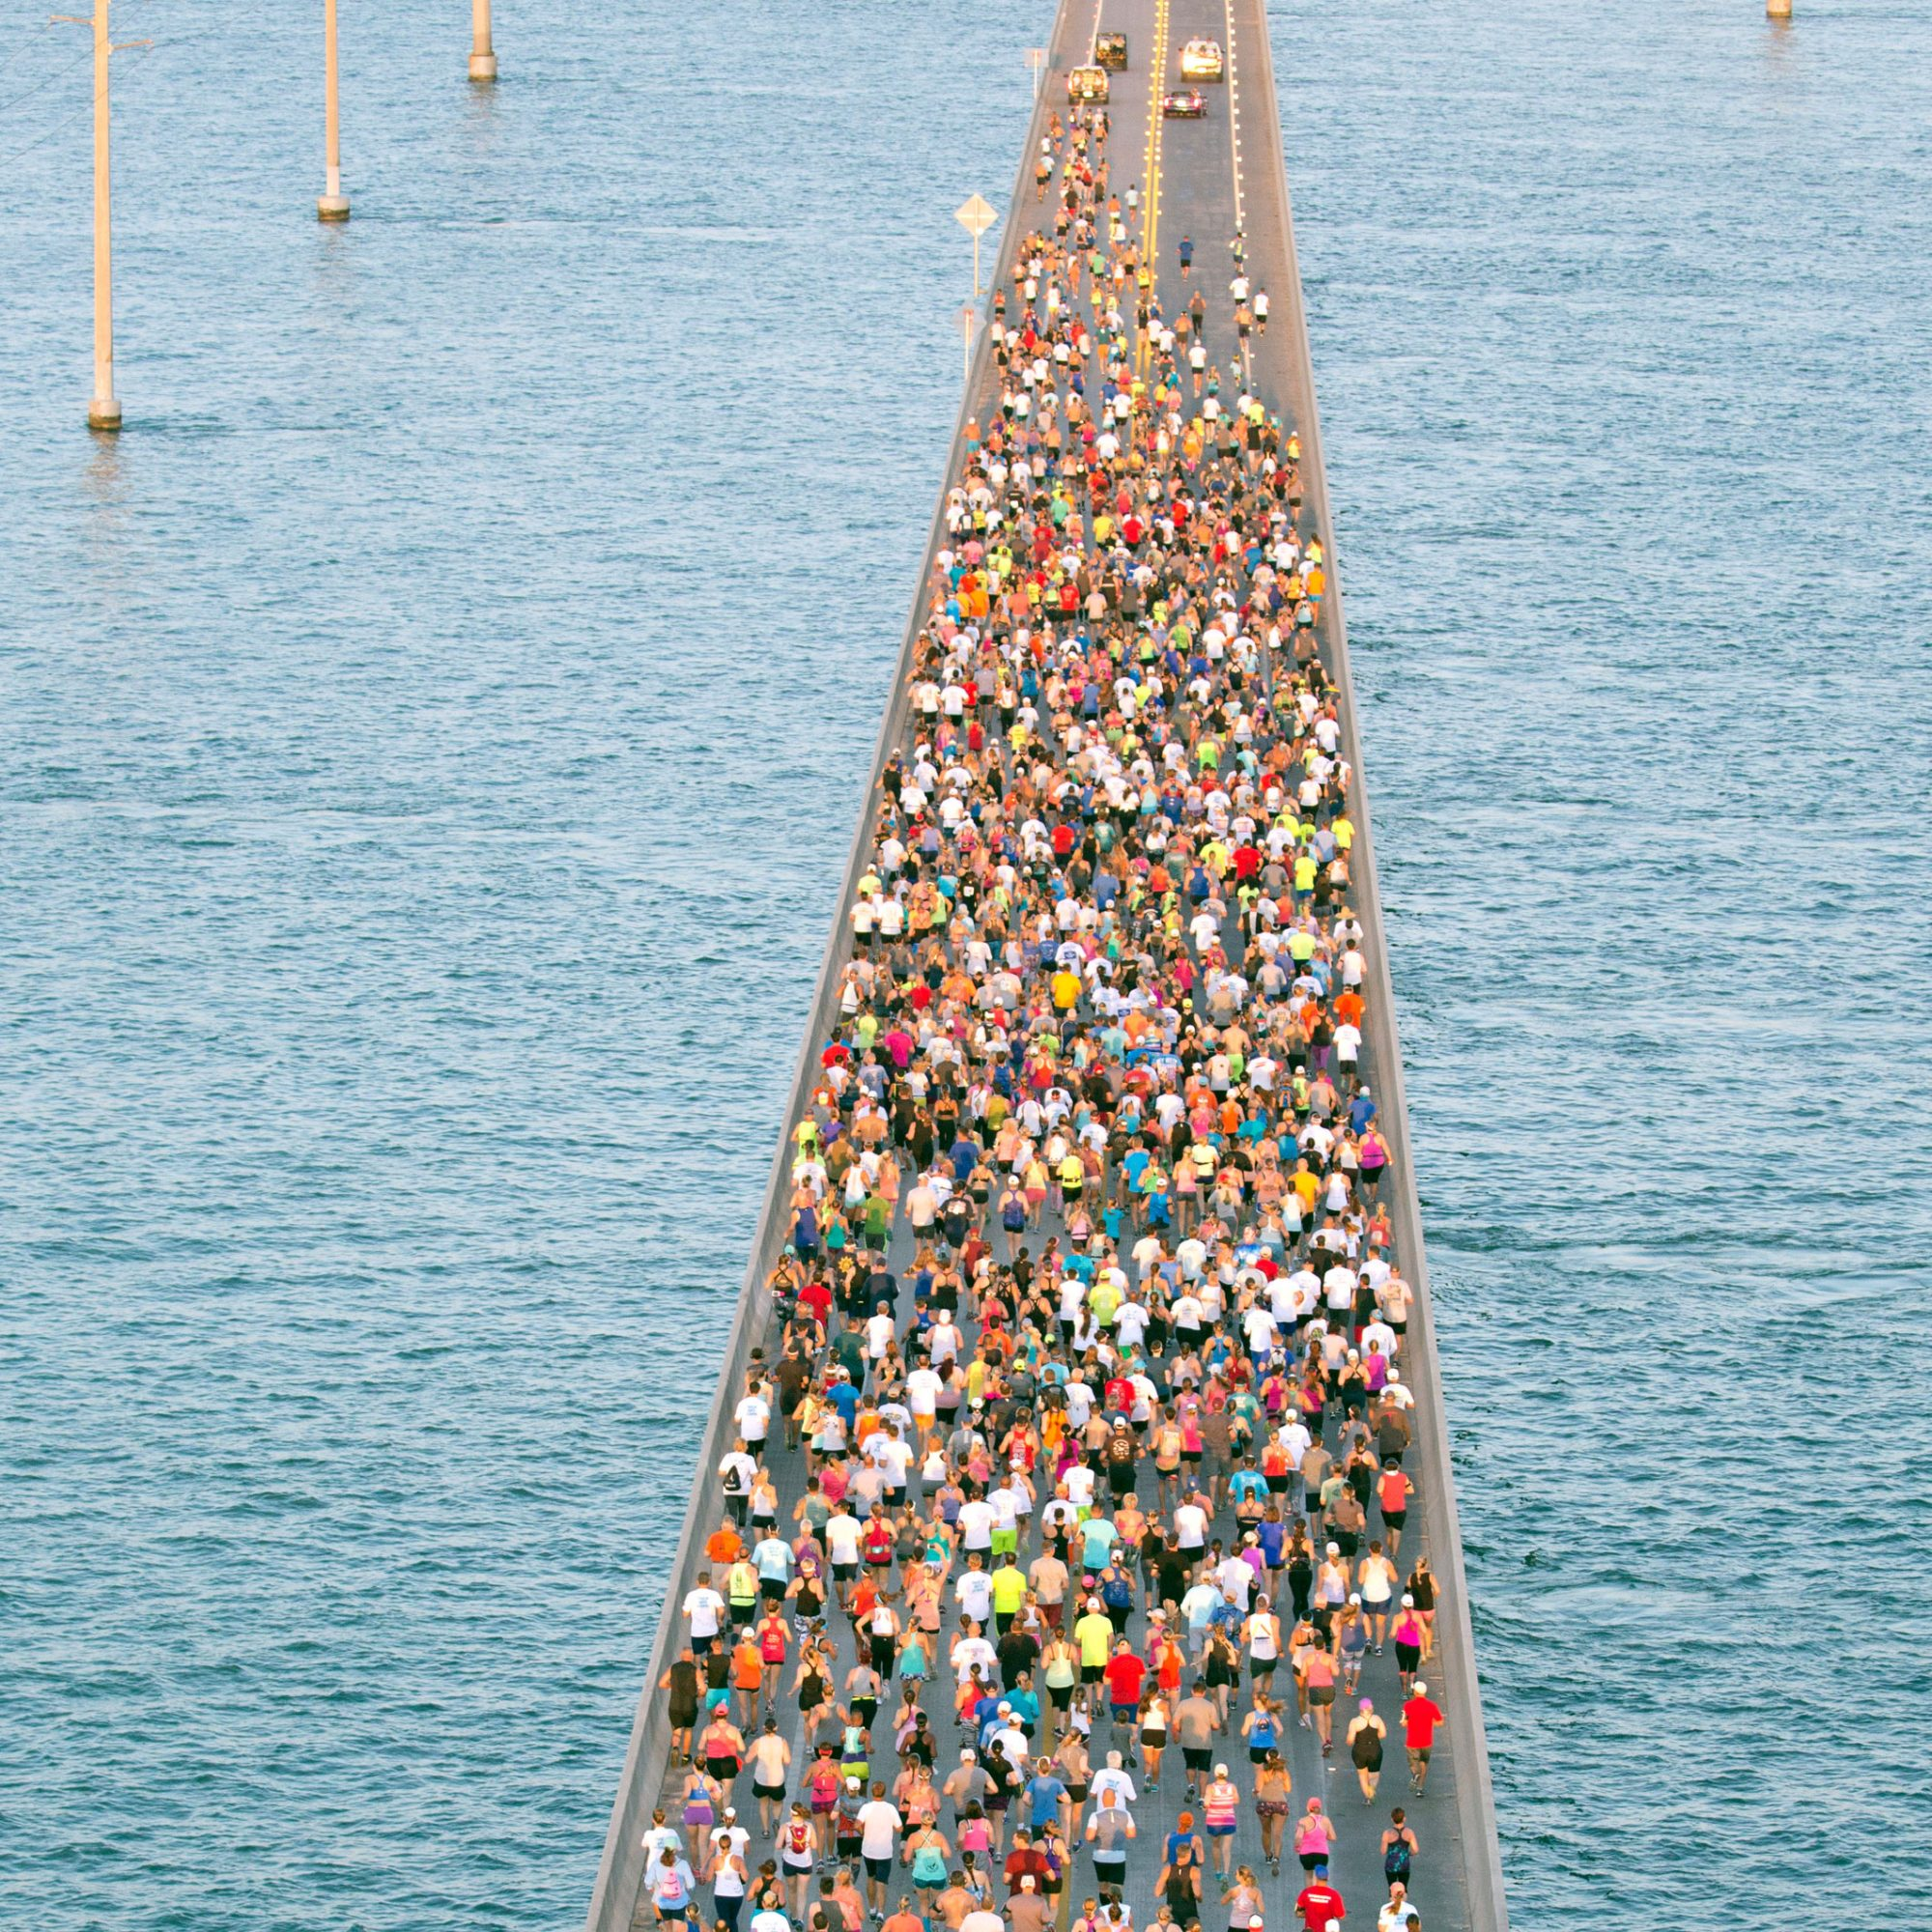 View_Of_Marathon_on_Bridge_Over_Water